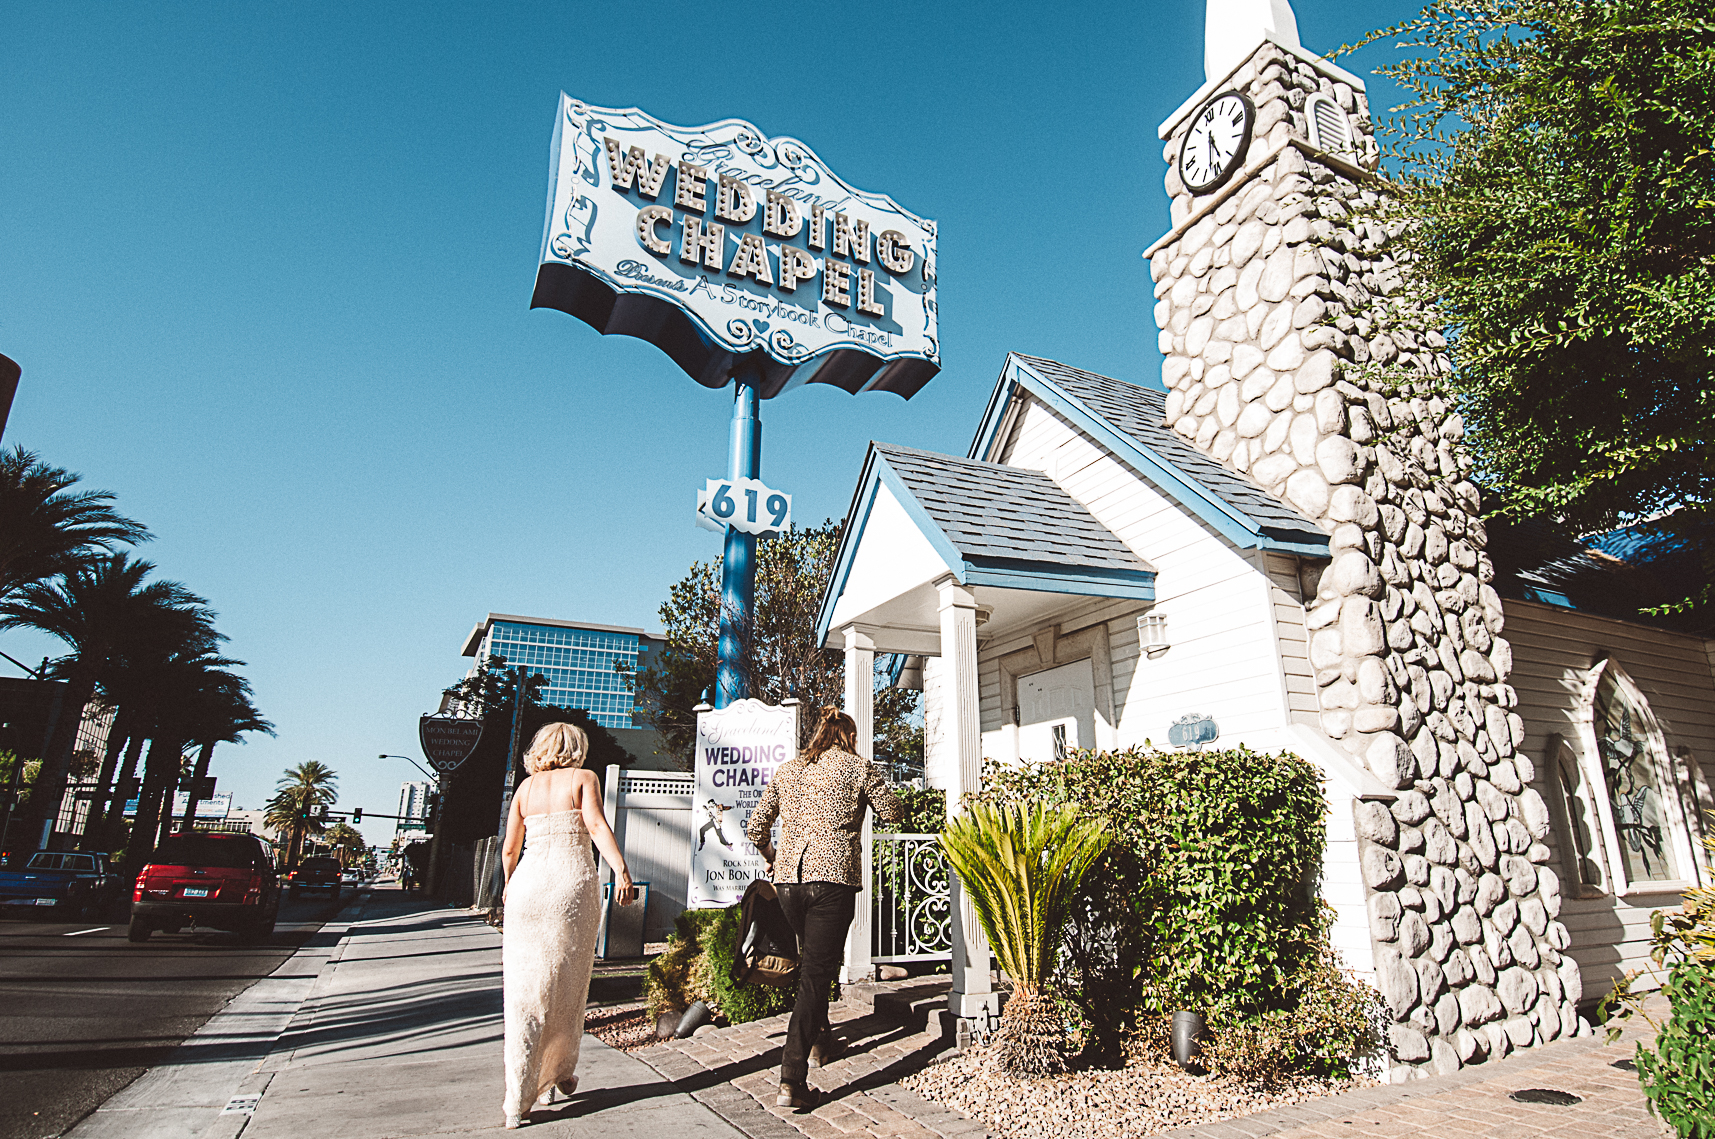 las vegas elopement, elope, rock'n roll bride, bride and groom, elvis wedding, pop up wedding, wedding, tattooed bride, tattoos, las vegas photographer, lifestyle photography, elopement inspiration, desert wedding, babe, marilyn monroe, aerial, drone photography, desert, ashley marie myers, las vegas wedding chapel,